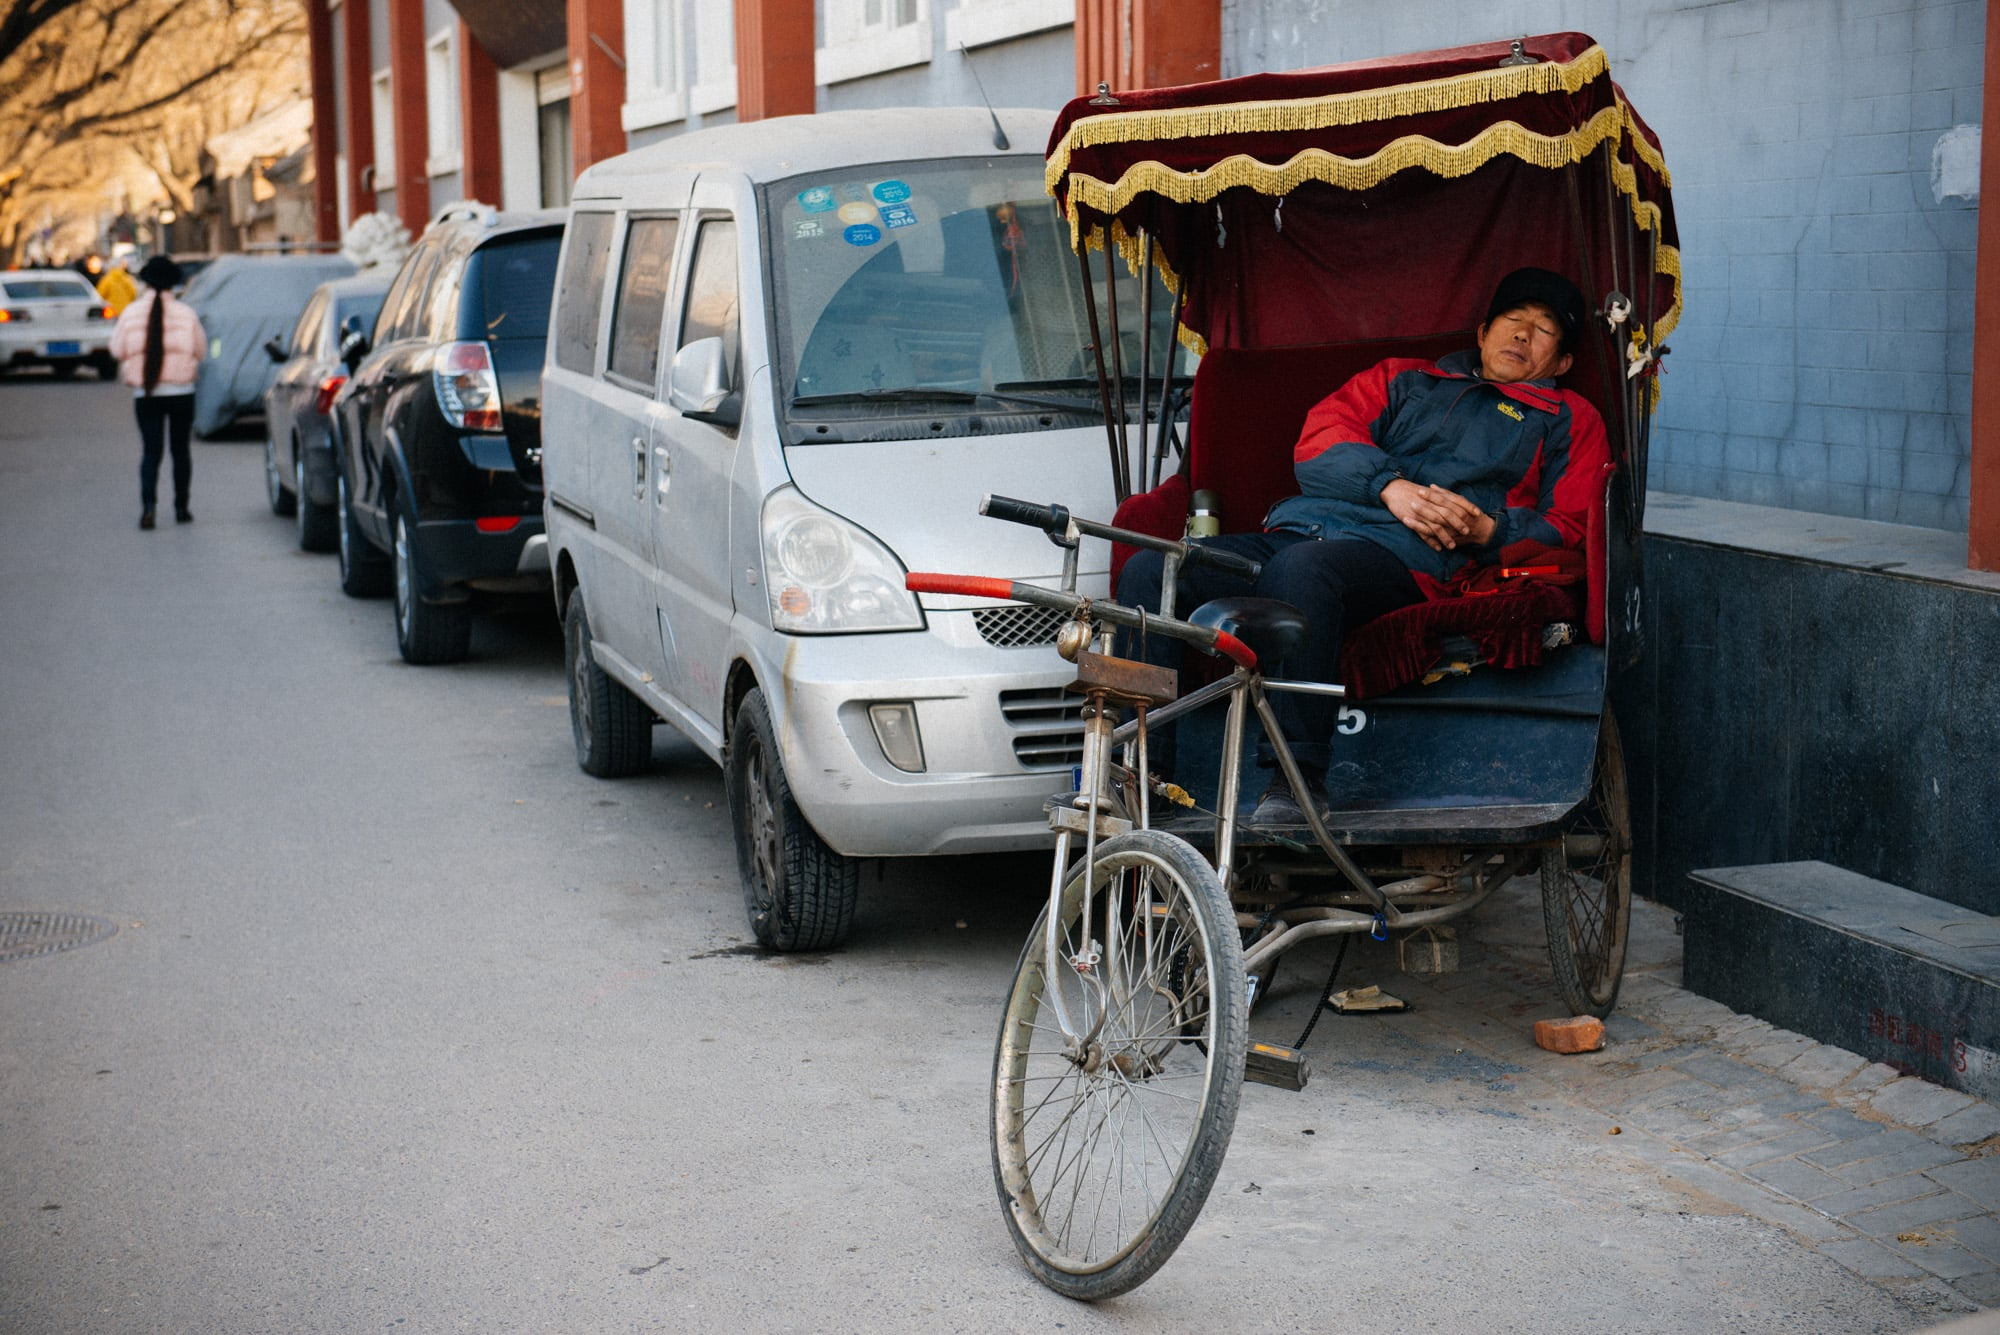 In the hutongs, the small alleyways in historical Beijing, it very common for tourists to go on rickshaw rides and get to know this neighborhood. Today was a slow day, so this guy was taking a nap.Careful when setting a price, they do try to overcharge foreigners and sometimes try to charge a different amount from what was settled in the beginning.